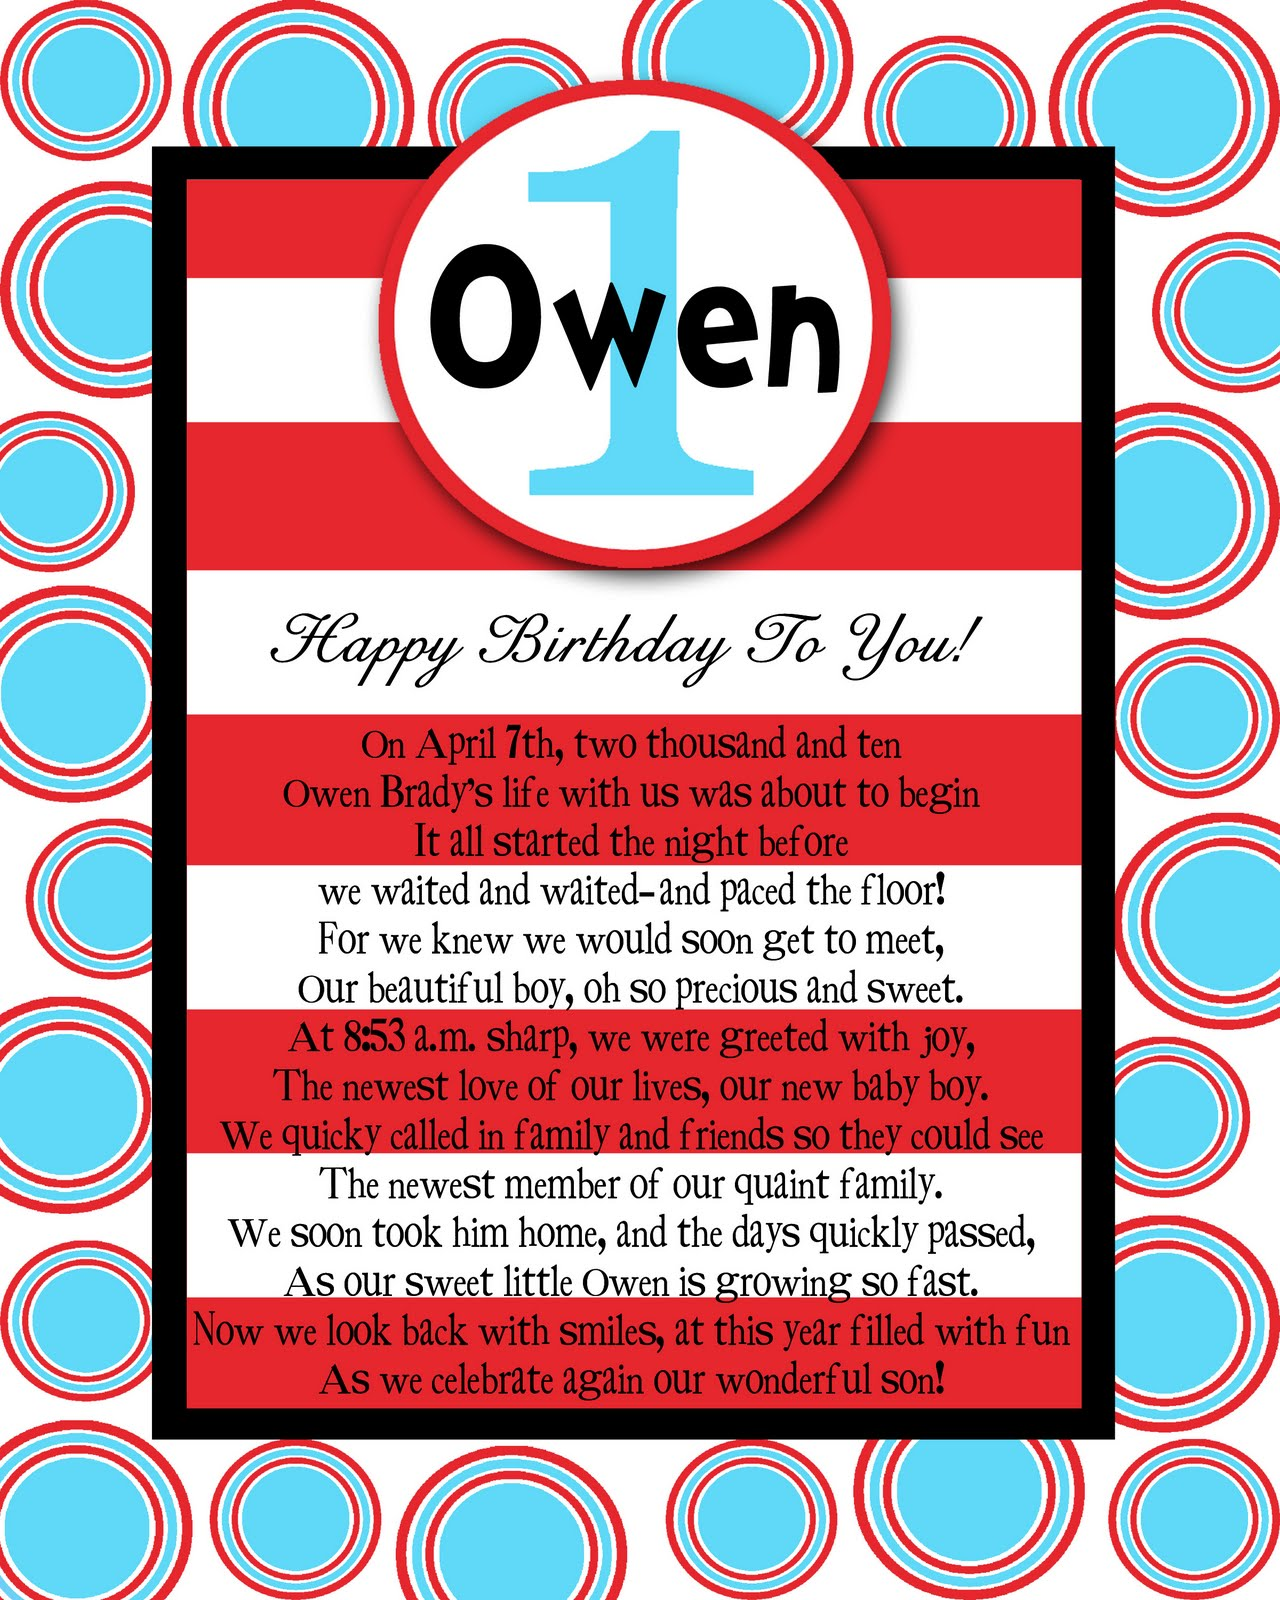 owen s first birthday party and my 33rd birthday oh i am so old and